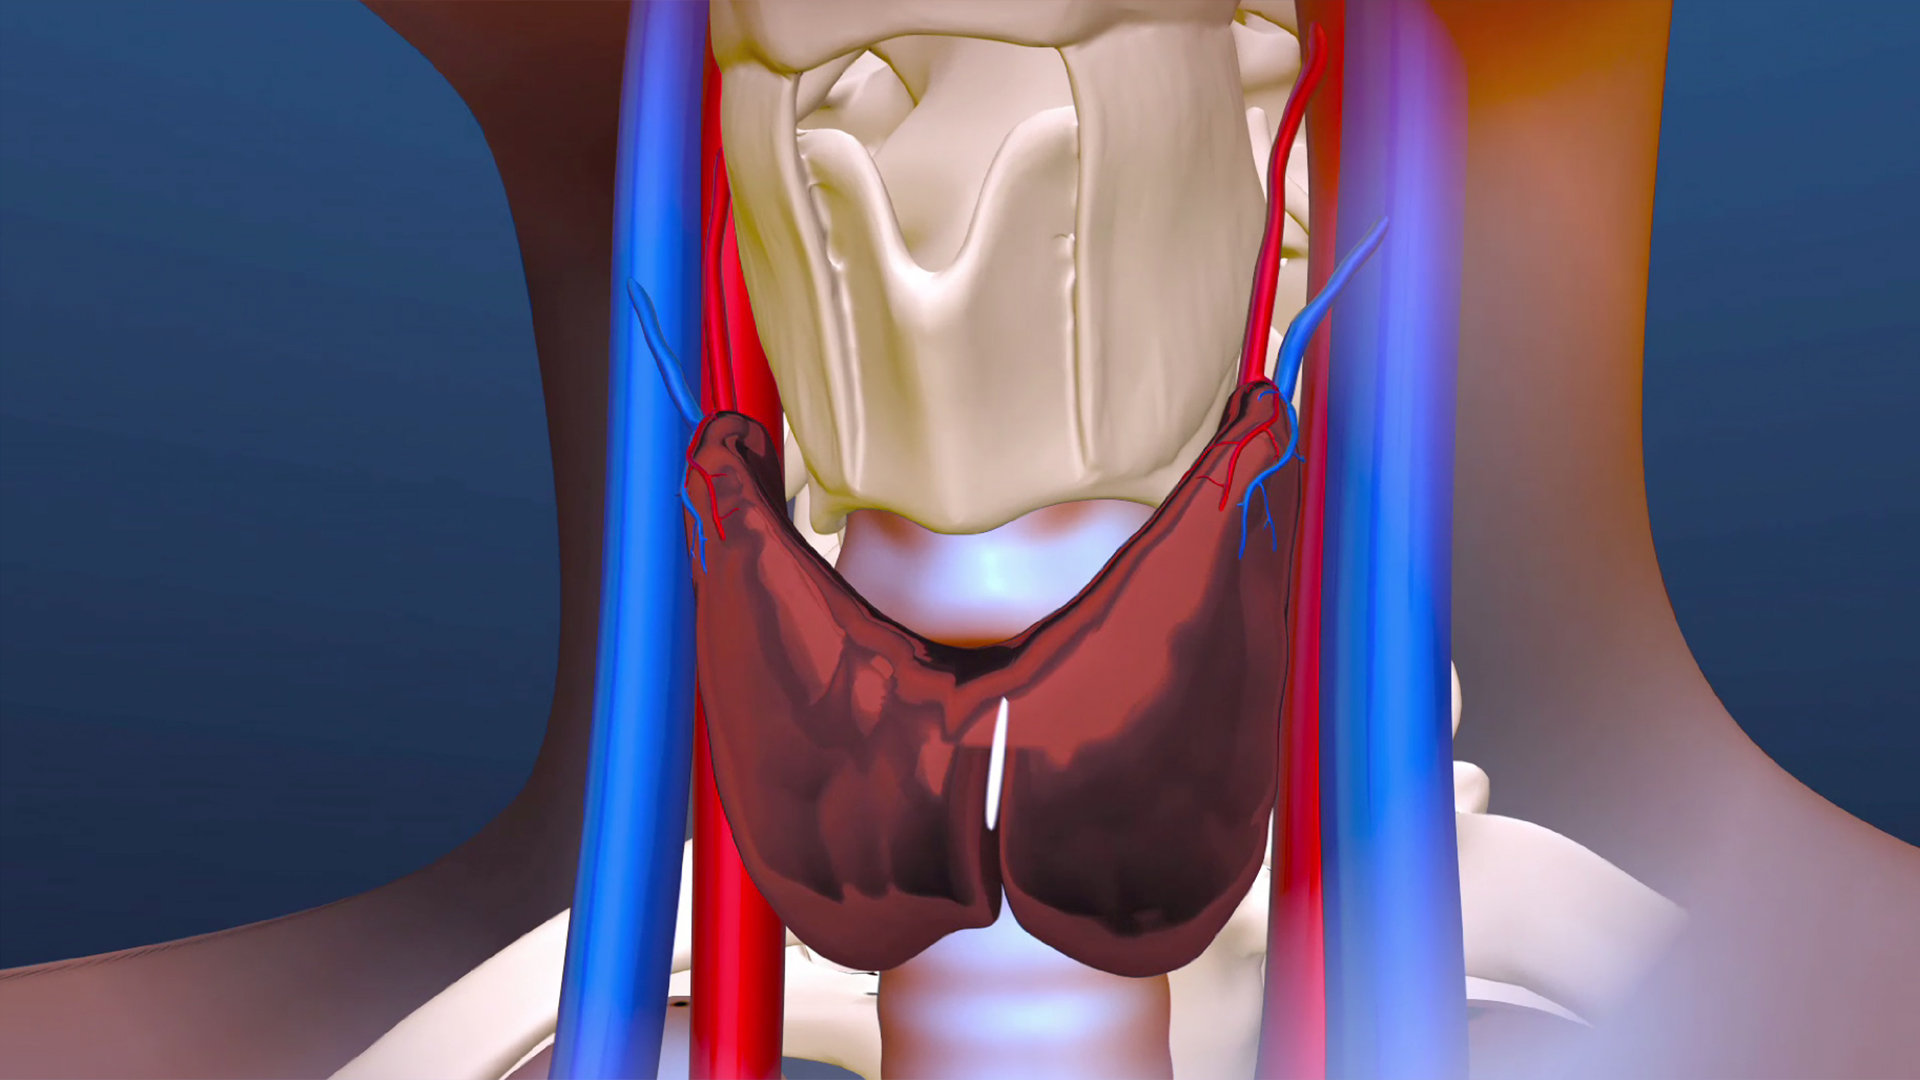 Still from an animation I created showing a new surgical technique